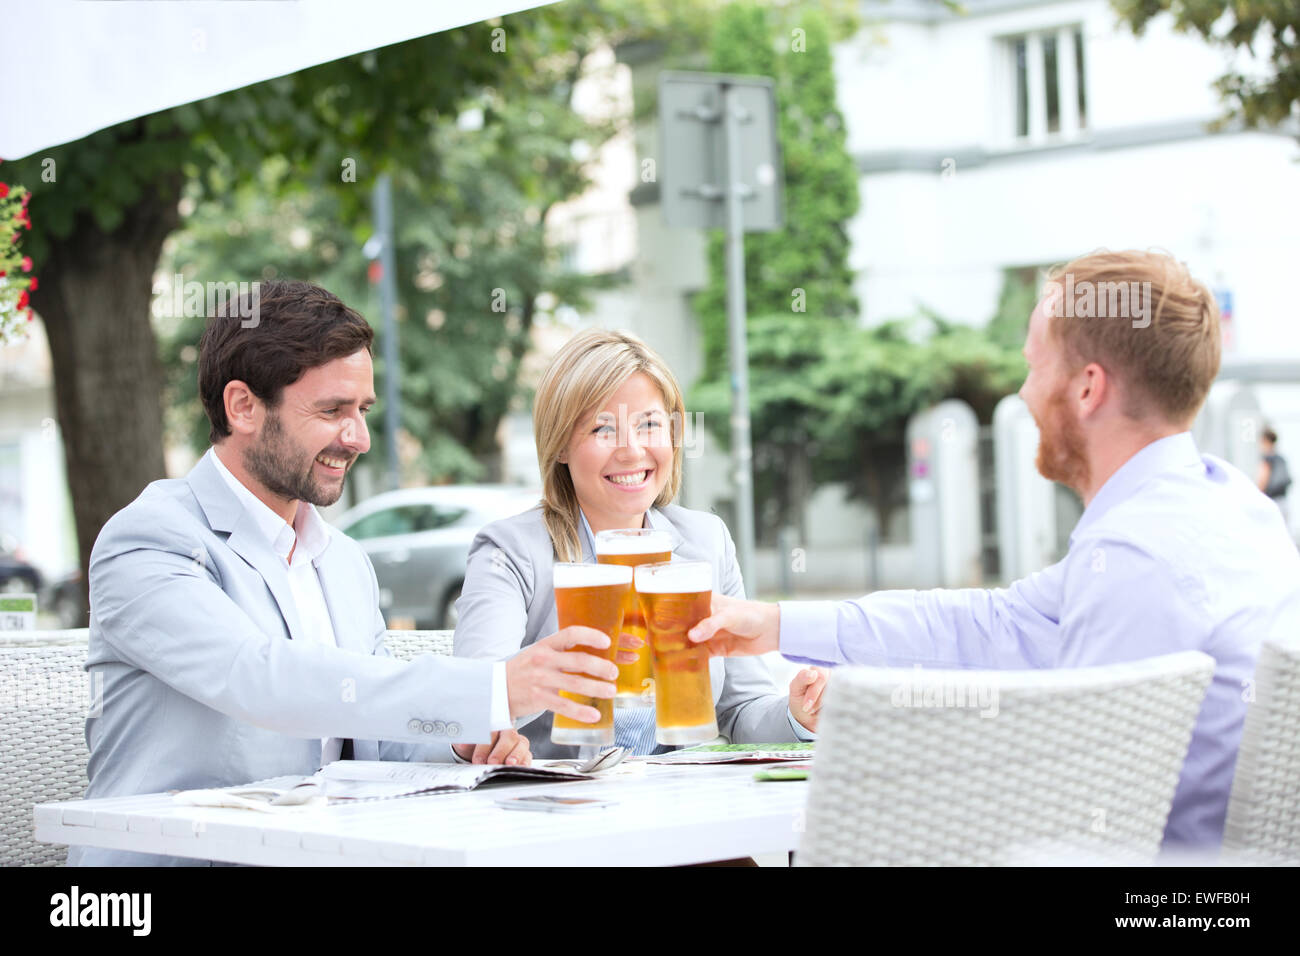 Happy woman toasting beer glasses at outdoor restaurant Photo Stock